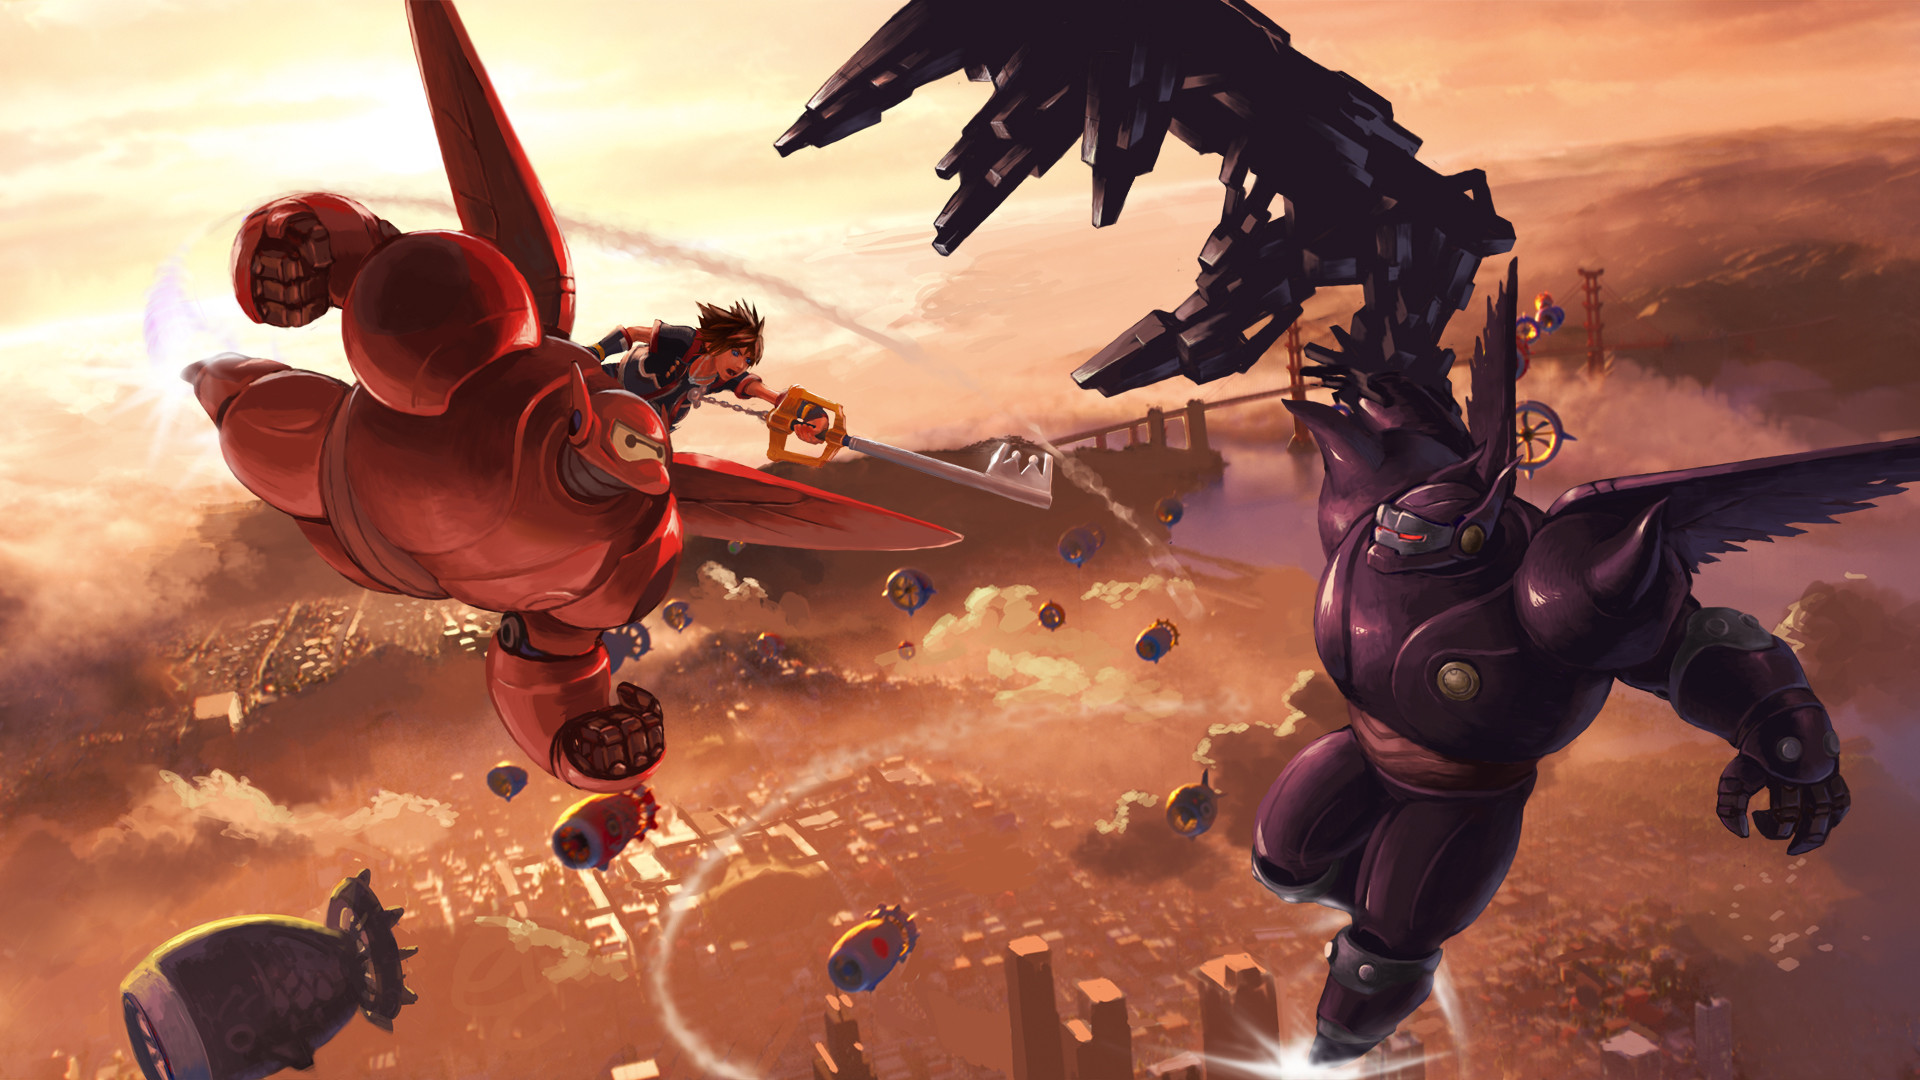 Kingdom Hearts Iii Here Is Everything You Need To Know Before